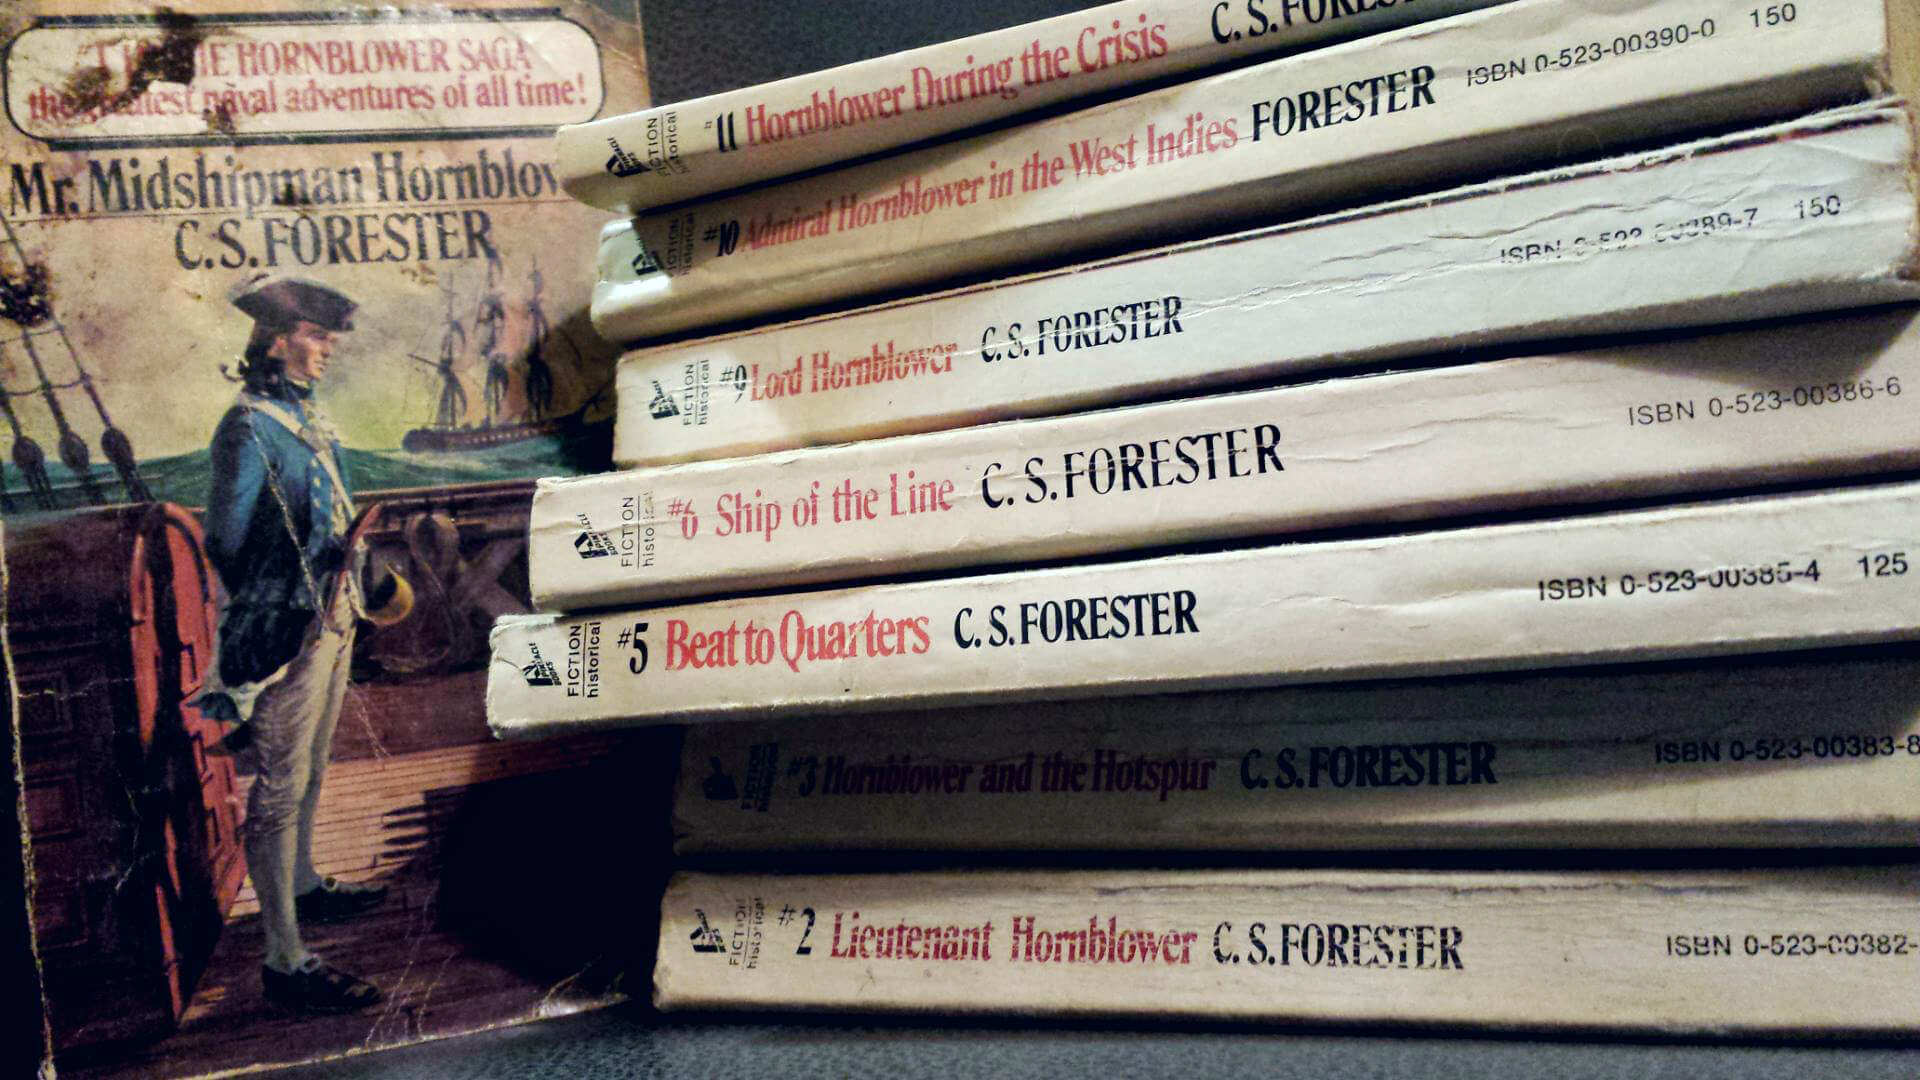 The Horatio Hornblower series, C. S. Forester